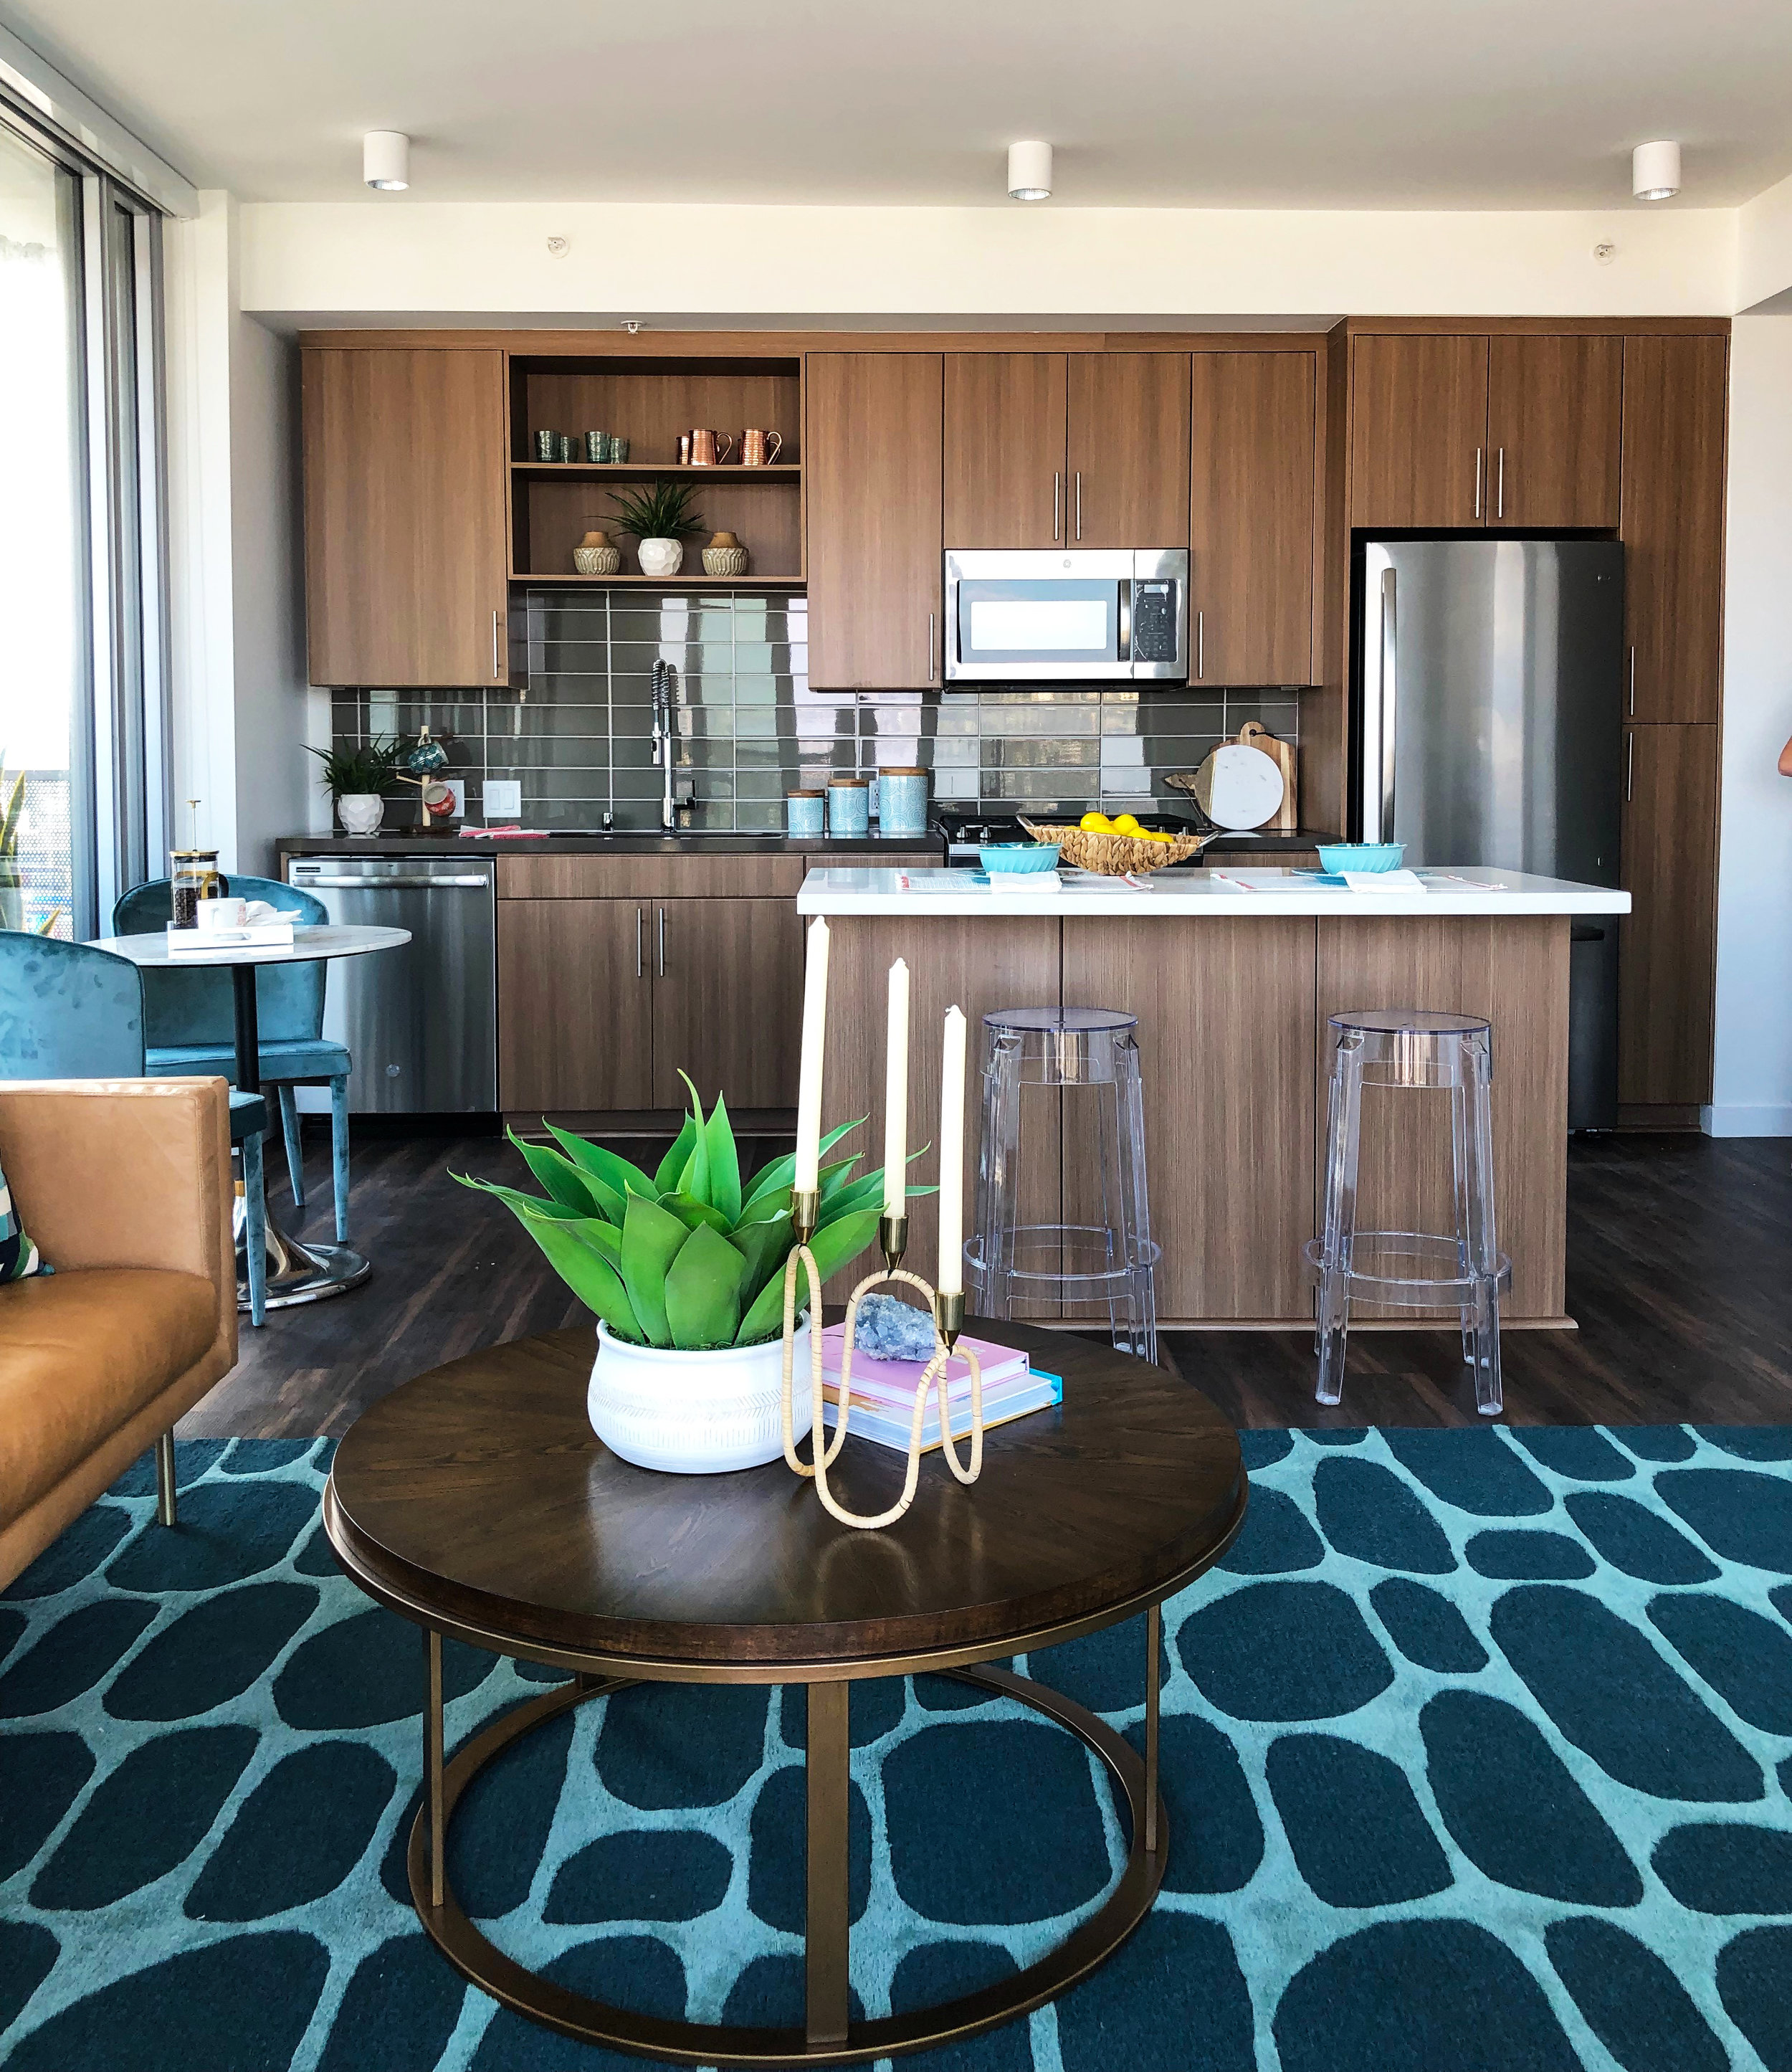 Create definition and beauty to a room. - You may see an area rug as something you just walk over, but in fact they are a very important design element in a room. Similar to a fabulous pair of shoes an area rug can either break or make an outfit and space. They are the perfect addition to create definition and beauty to a room. Not only can an area rug satisfy the most fashionable eye, it can also serve as an acoustical damper to heavy footsteps and create separation between rooms.The area rug trends we are excited about this year are bold geometric and distressed vintage prints, global inspired, cowhides, avant-garde designs, faux animal prints, shaggy synthetic fibers and abstract patterns. The very first step you take in selecting a rug is the room size. Measuring the room is key to ensuring the perfect fit. One of the biggest mistakes people make is selecting a rug that is too small for a large room, makingYour lifestyle should have an impact on the choice of rug in your main living areas. If the space is more relaxed then look for a more casual less formal rug. Go for an eye catching geometric pattern if you're looking to infuse your home with colorful personality. These gorgeous rugs are a great way to make a style statement with an on point trend. The distressed global styles can give a room the perfect vintage element that's gained popularity over the past few years. Cowhide rugs are sprucing up rooms across America in a big way. From modern to rustic these statement making home accessories are making bold statements in the most luxurious way.